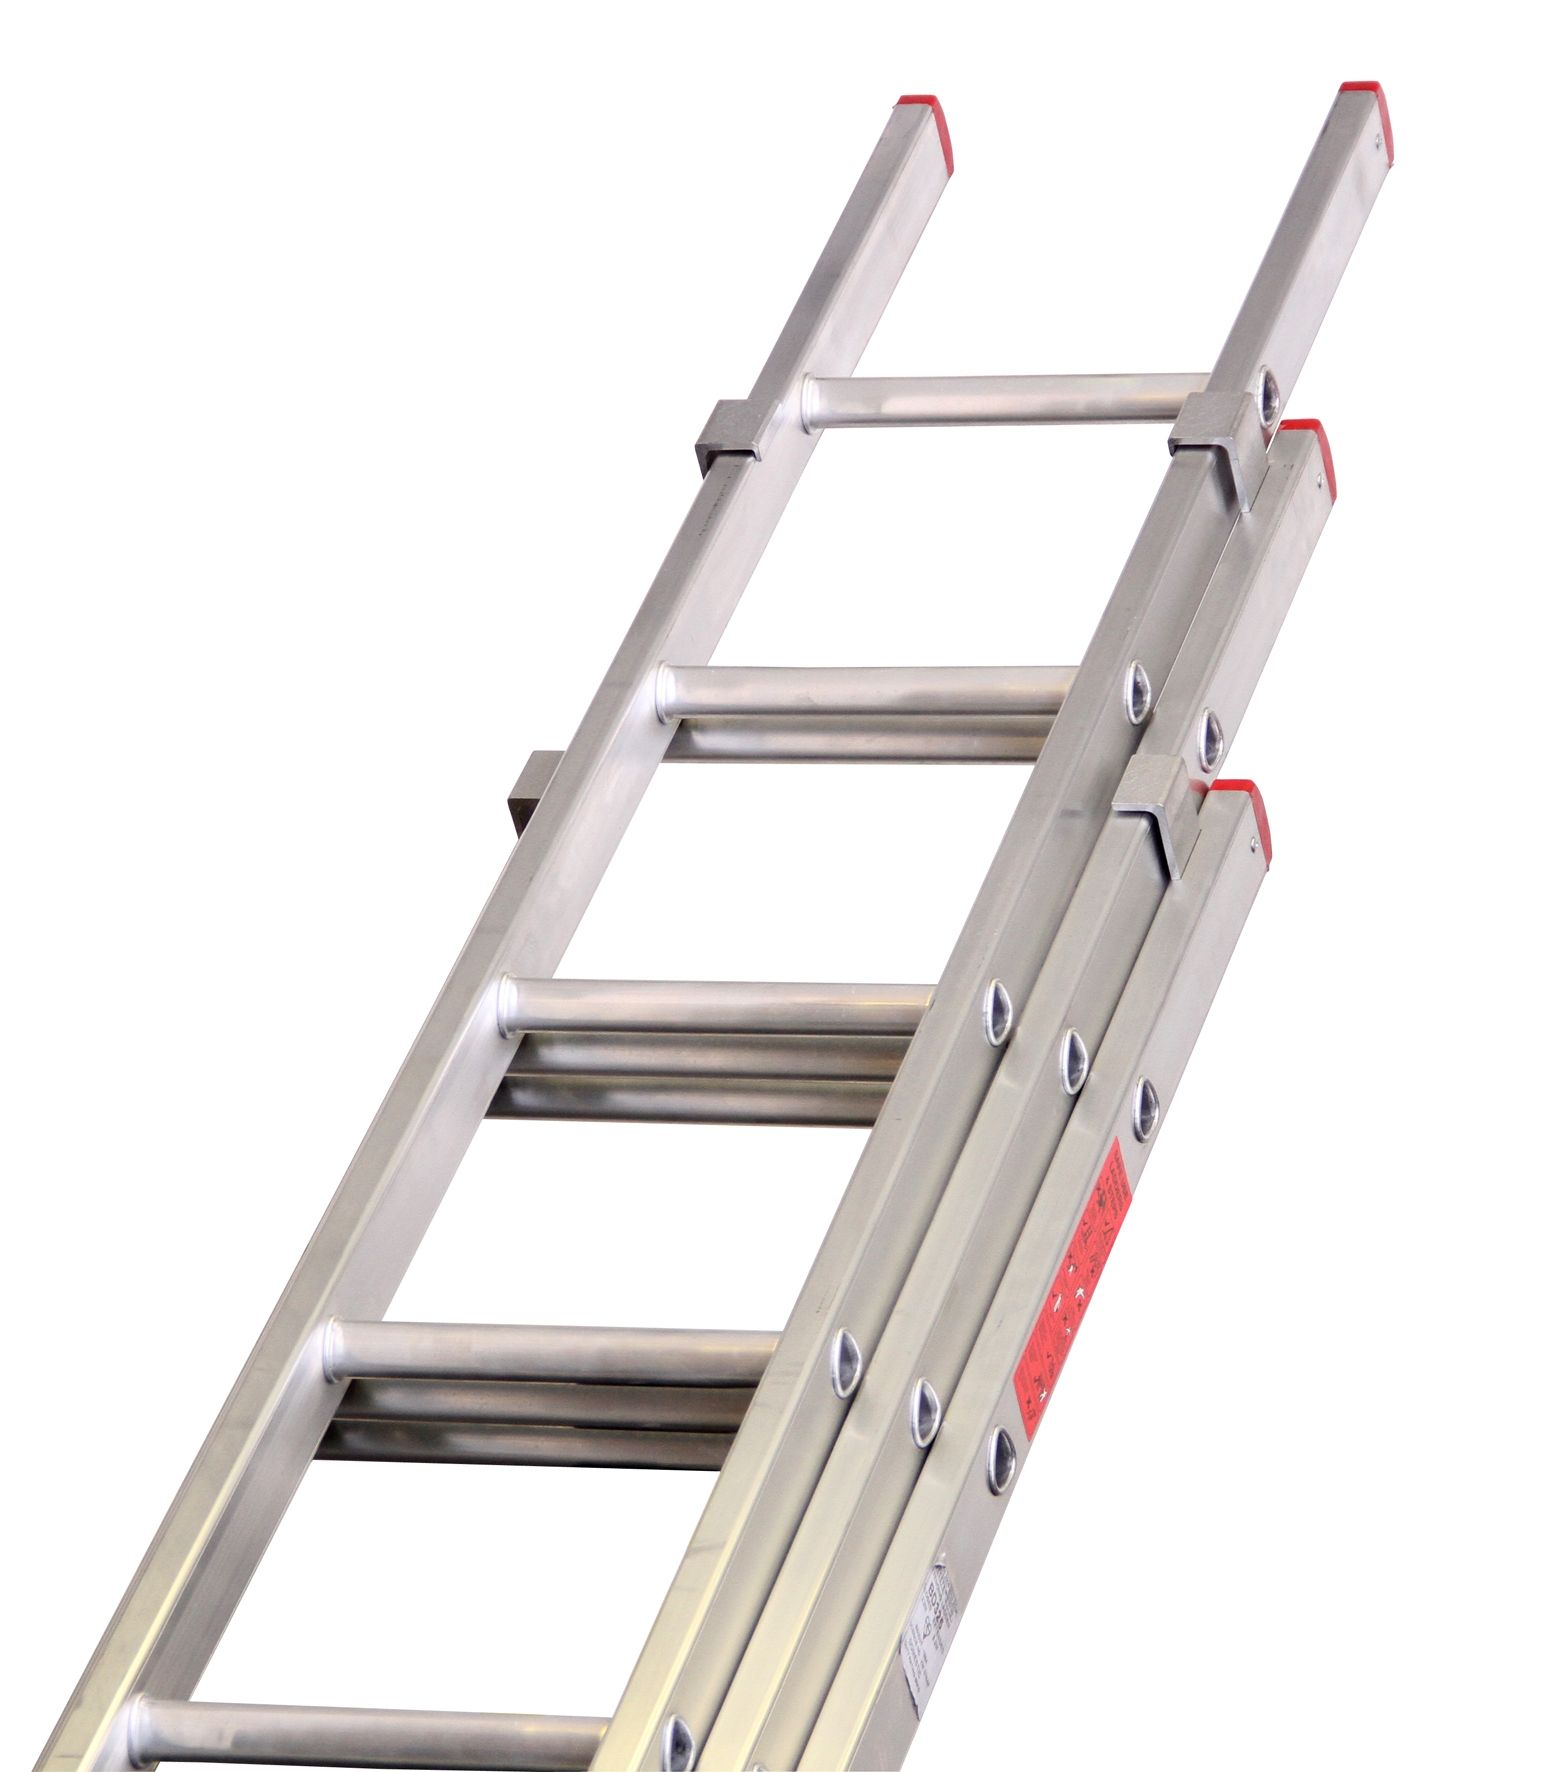 S K Ladders An Iso 9001 2008 Certified Company Came On The Board In The Year 2008 And Initiated Ma Aluminium Ladder Ladder Interior Design Boards